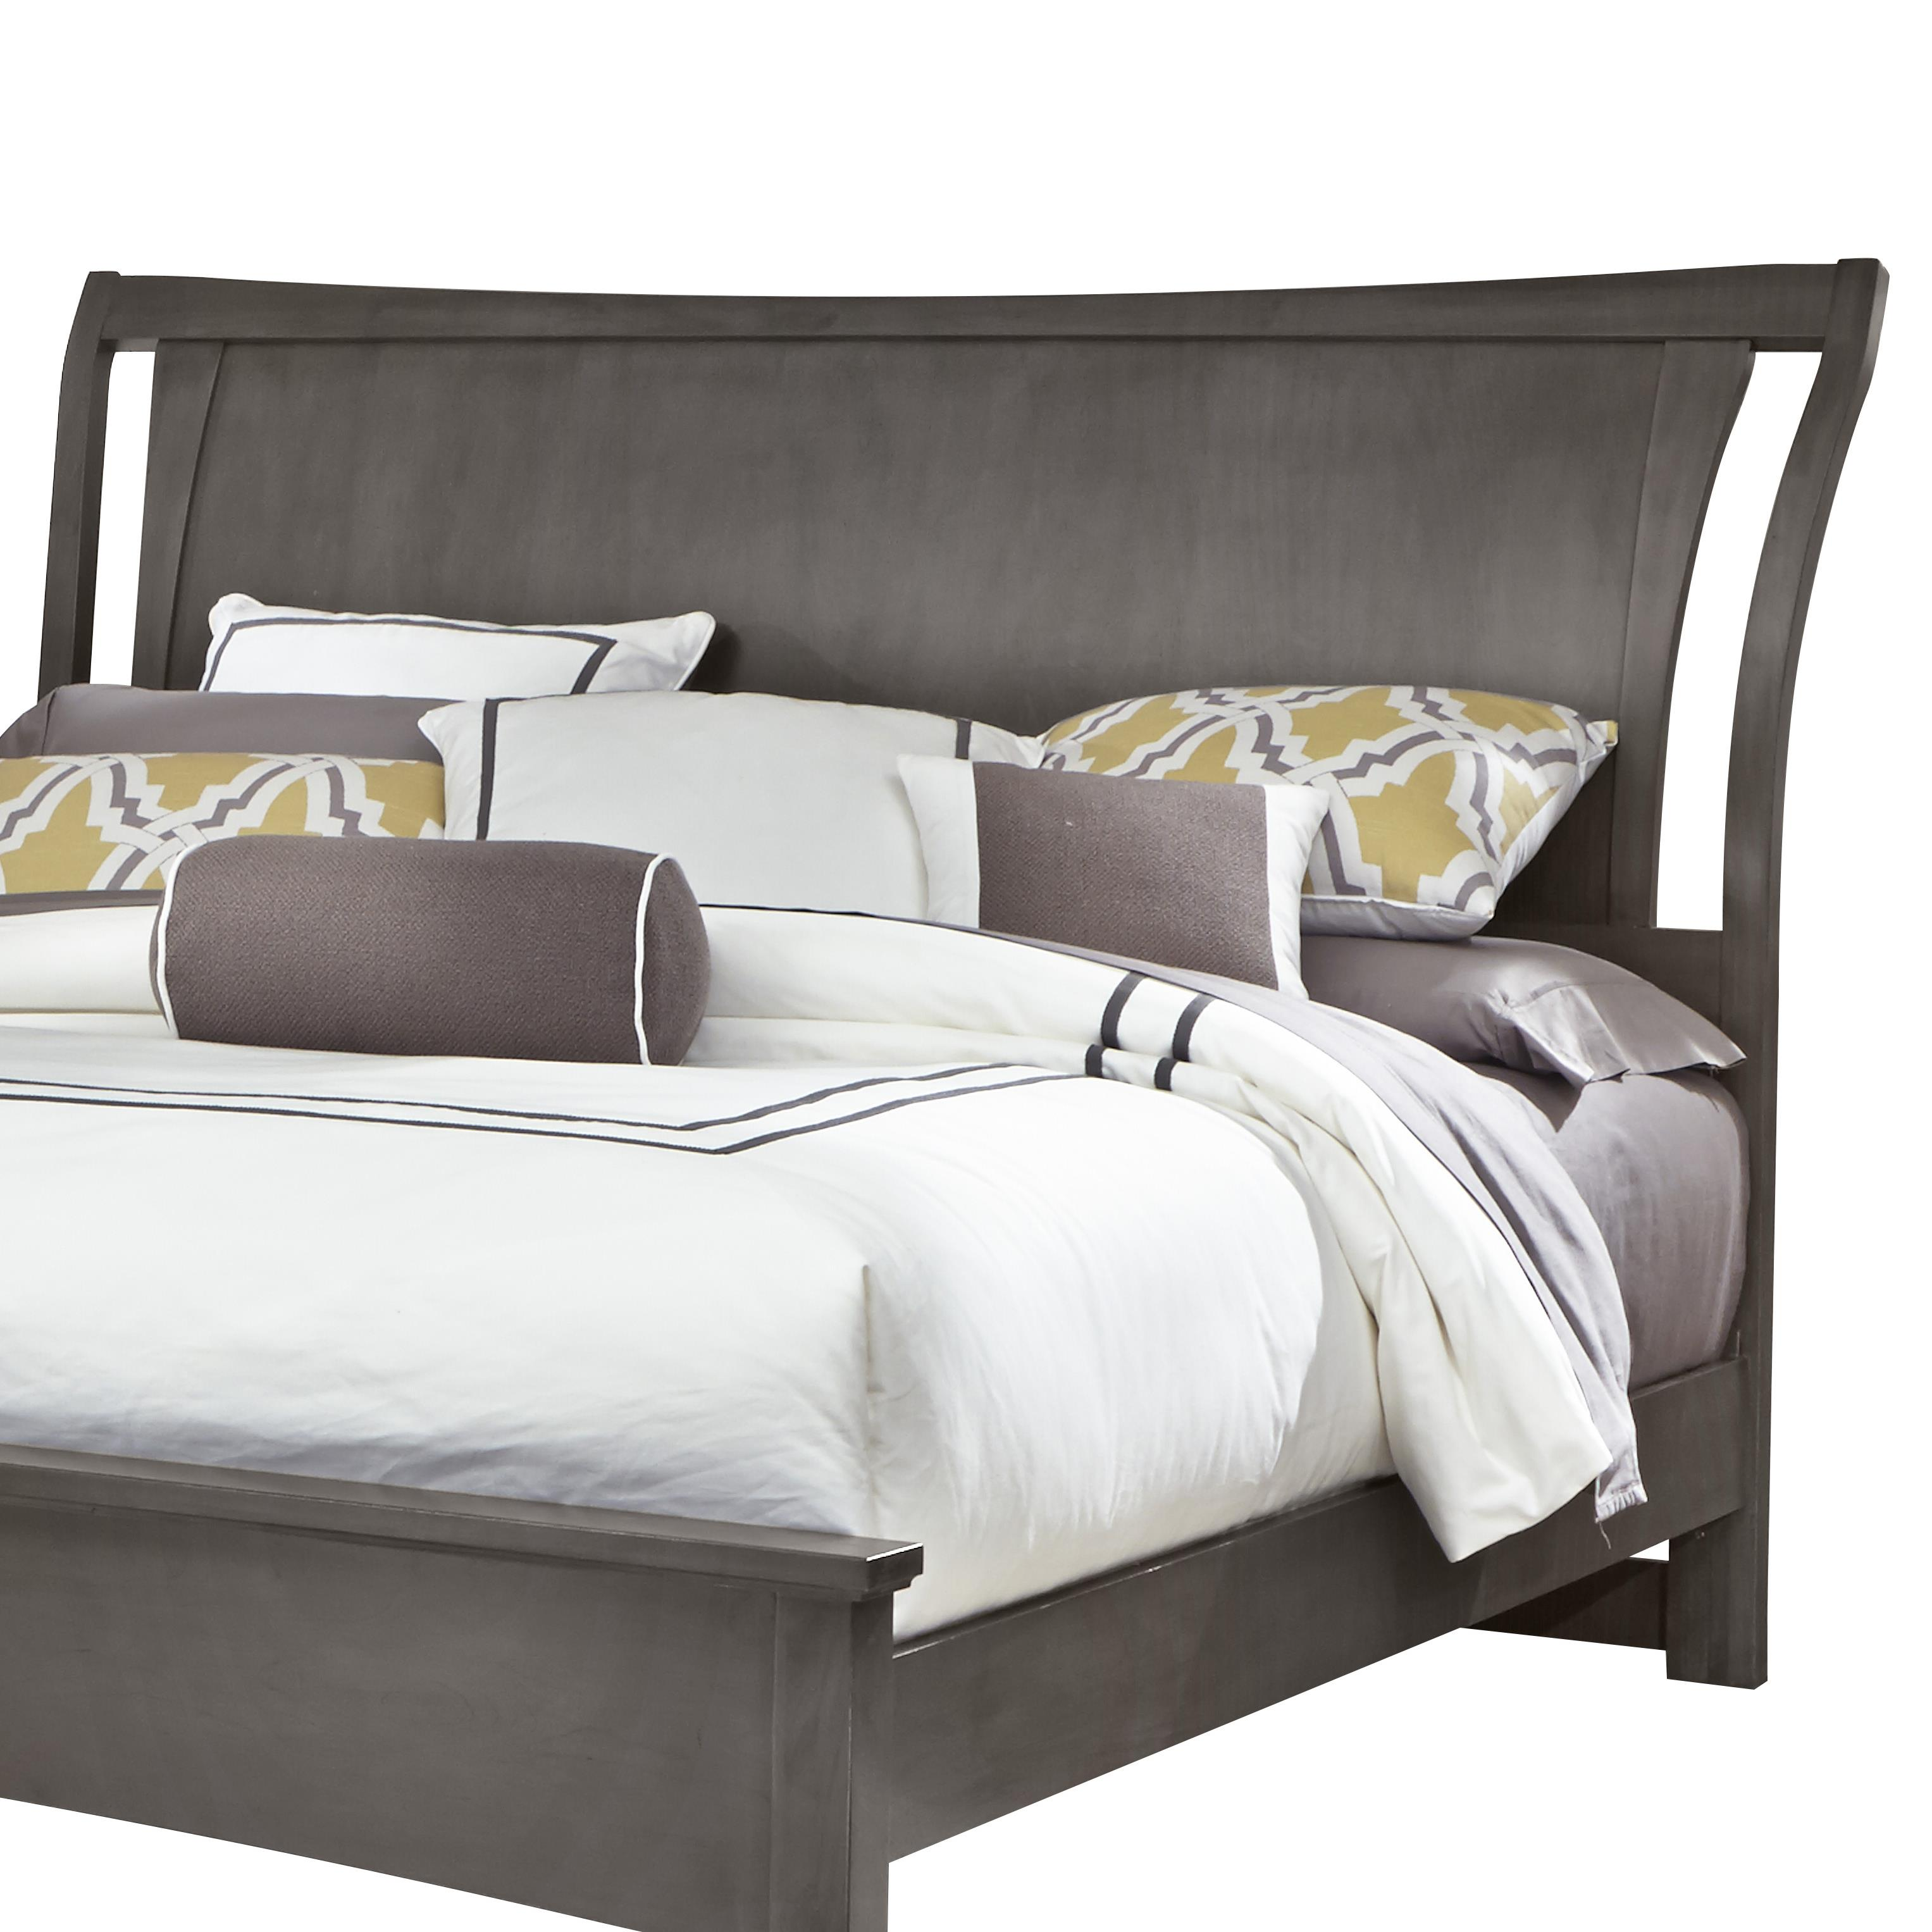 Vaughan Bassett Commentary King Wing Headboard - Item Number: 394-661